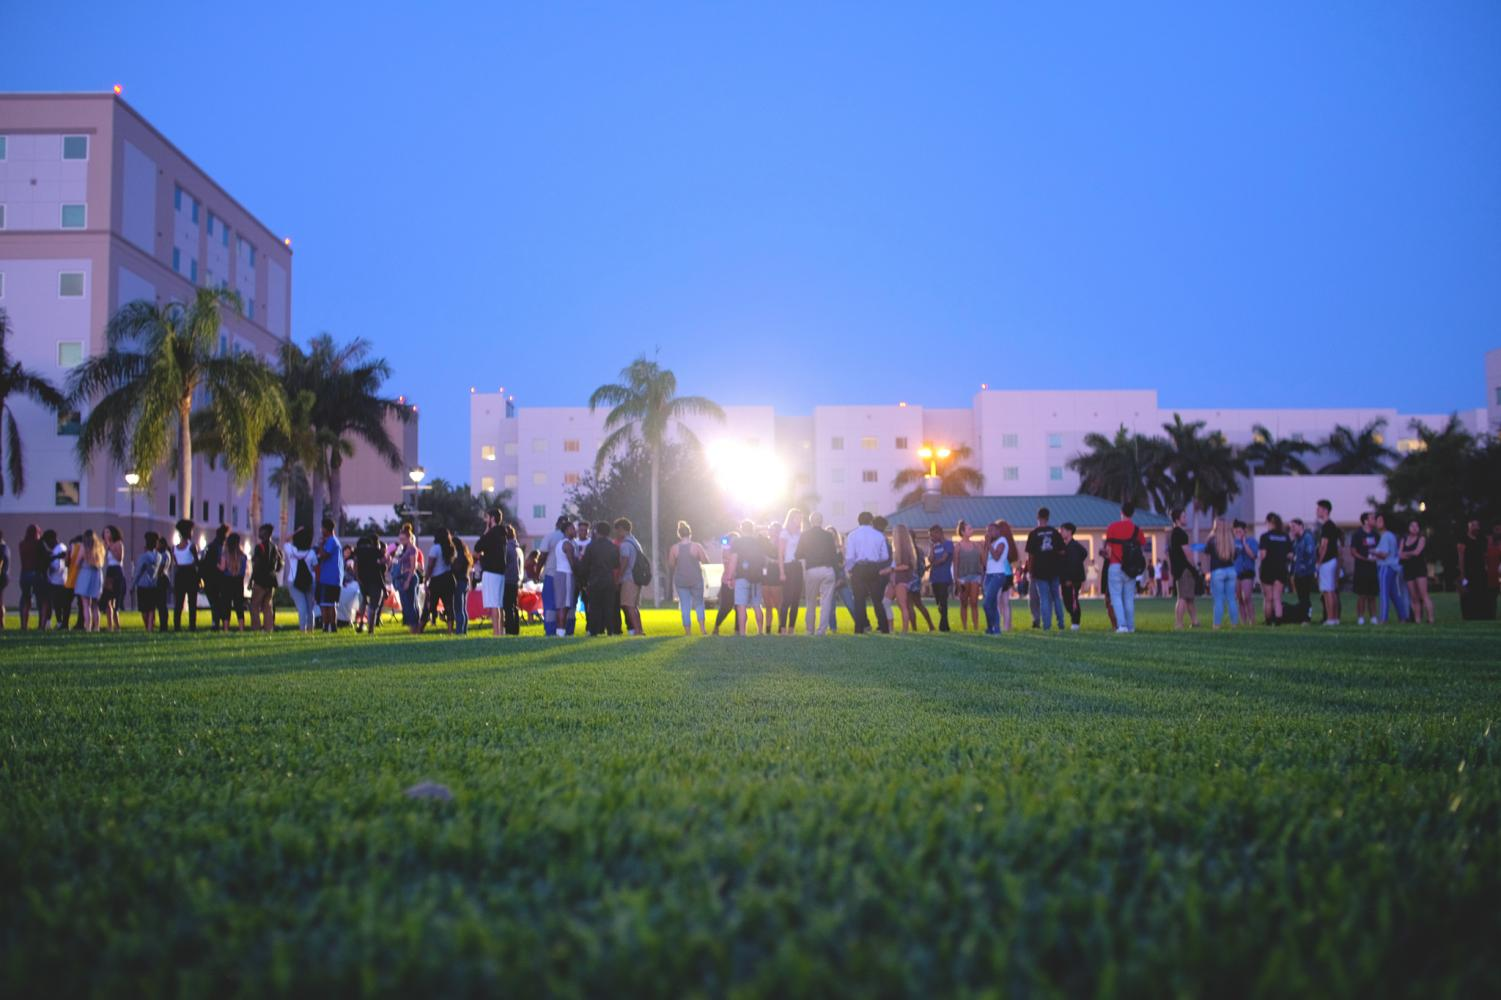 Students lined up for food trucks during the Glowfest party. Violet Castano | Photo Editor